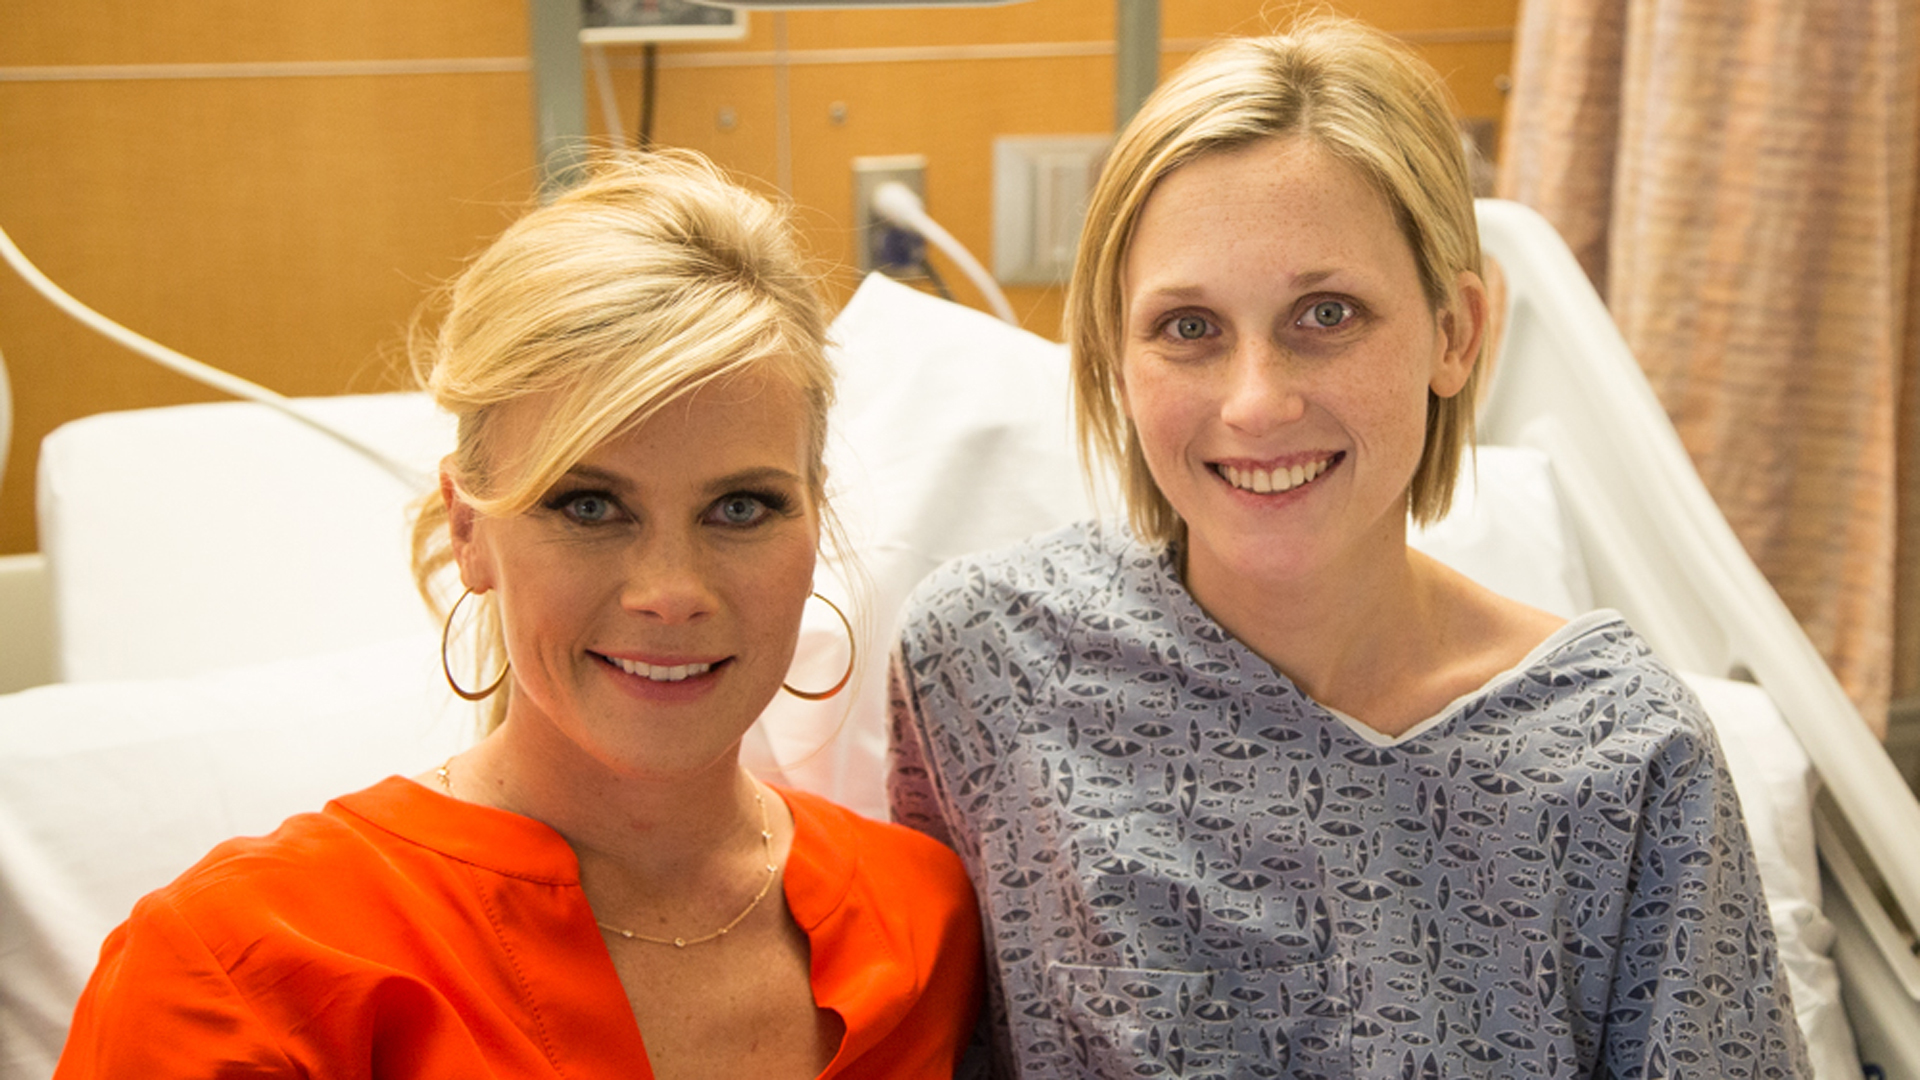 Alison Sweeney Family Pictures alison sweeney: the pediatric cancer ward showed me everyday